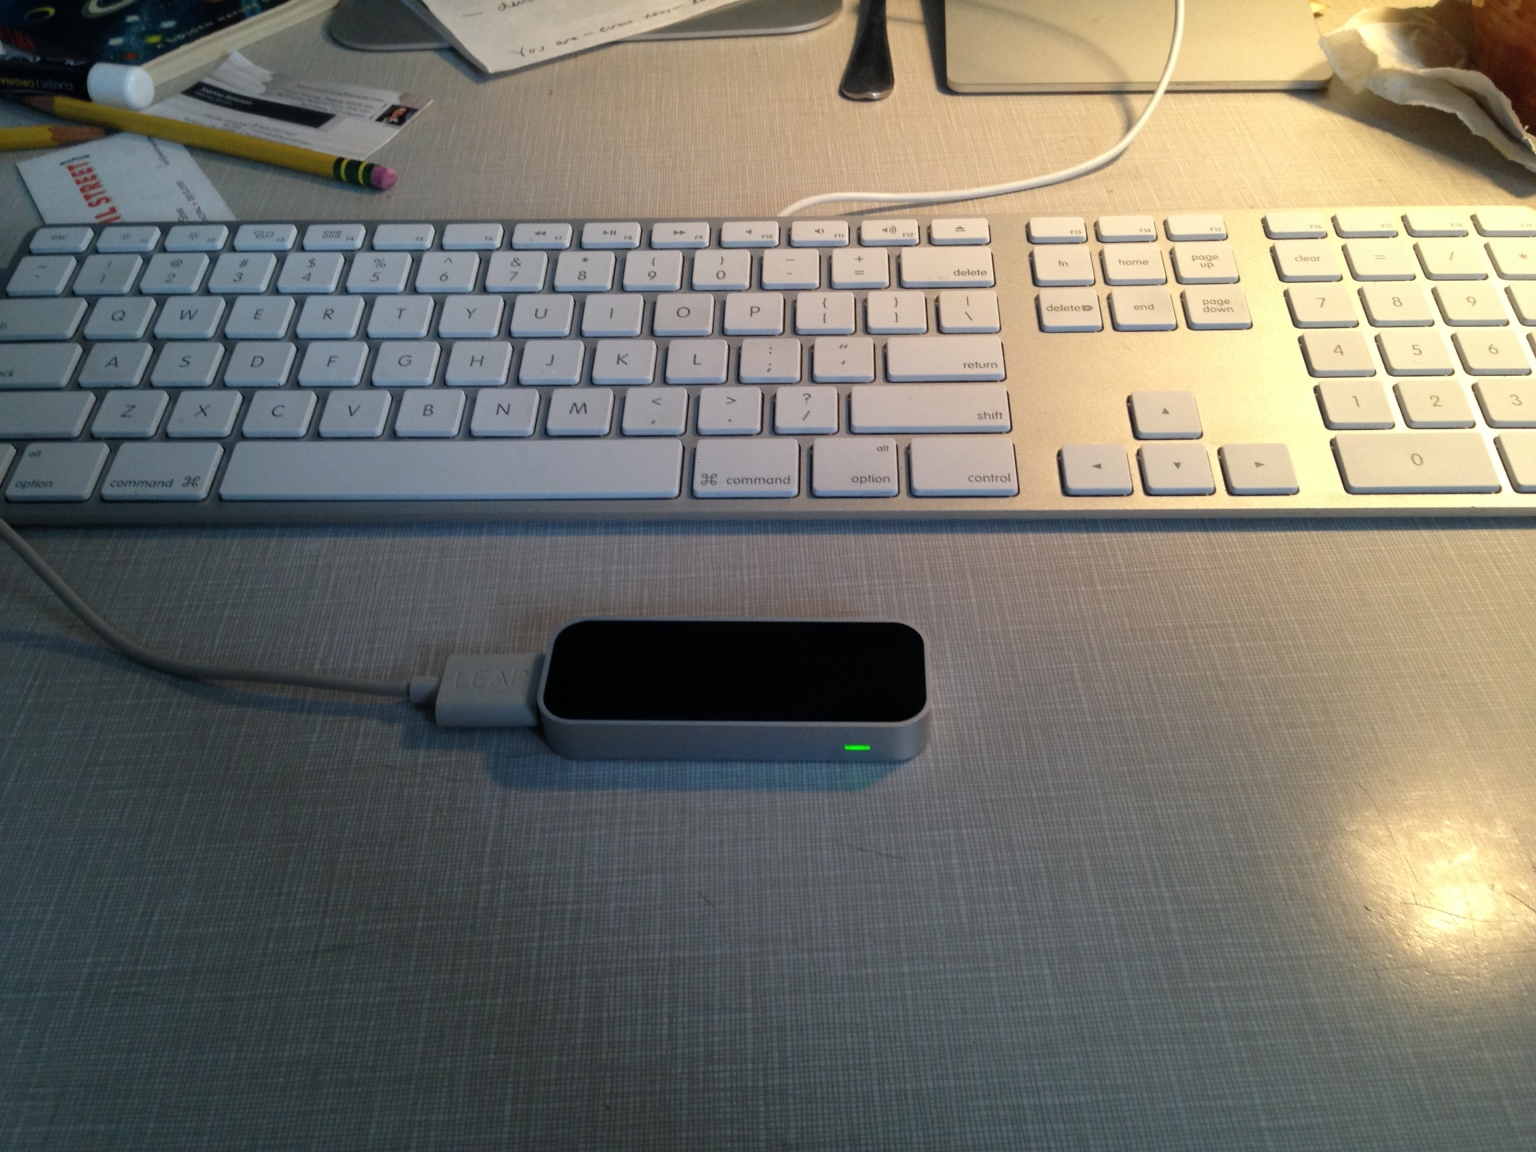 The Leap Motion device